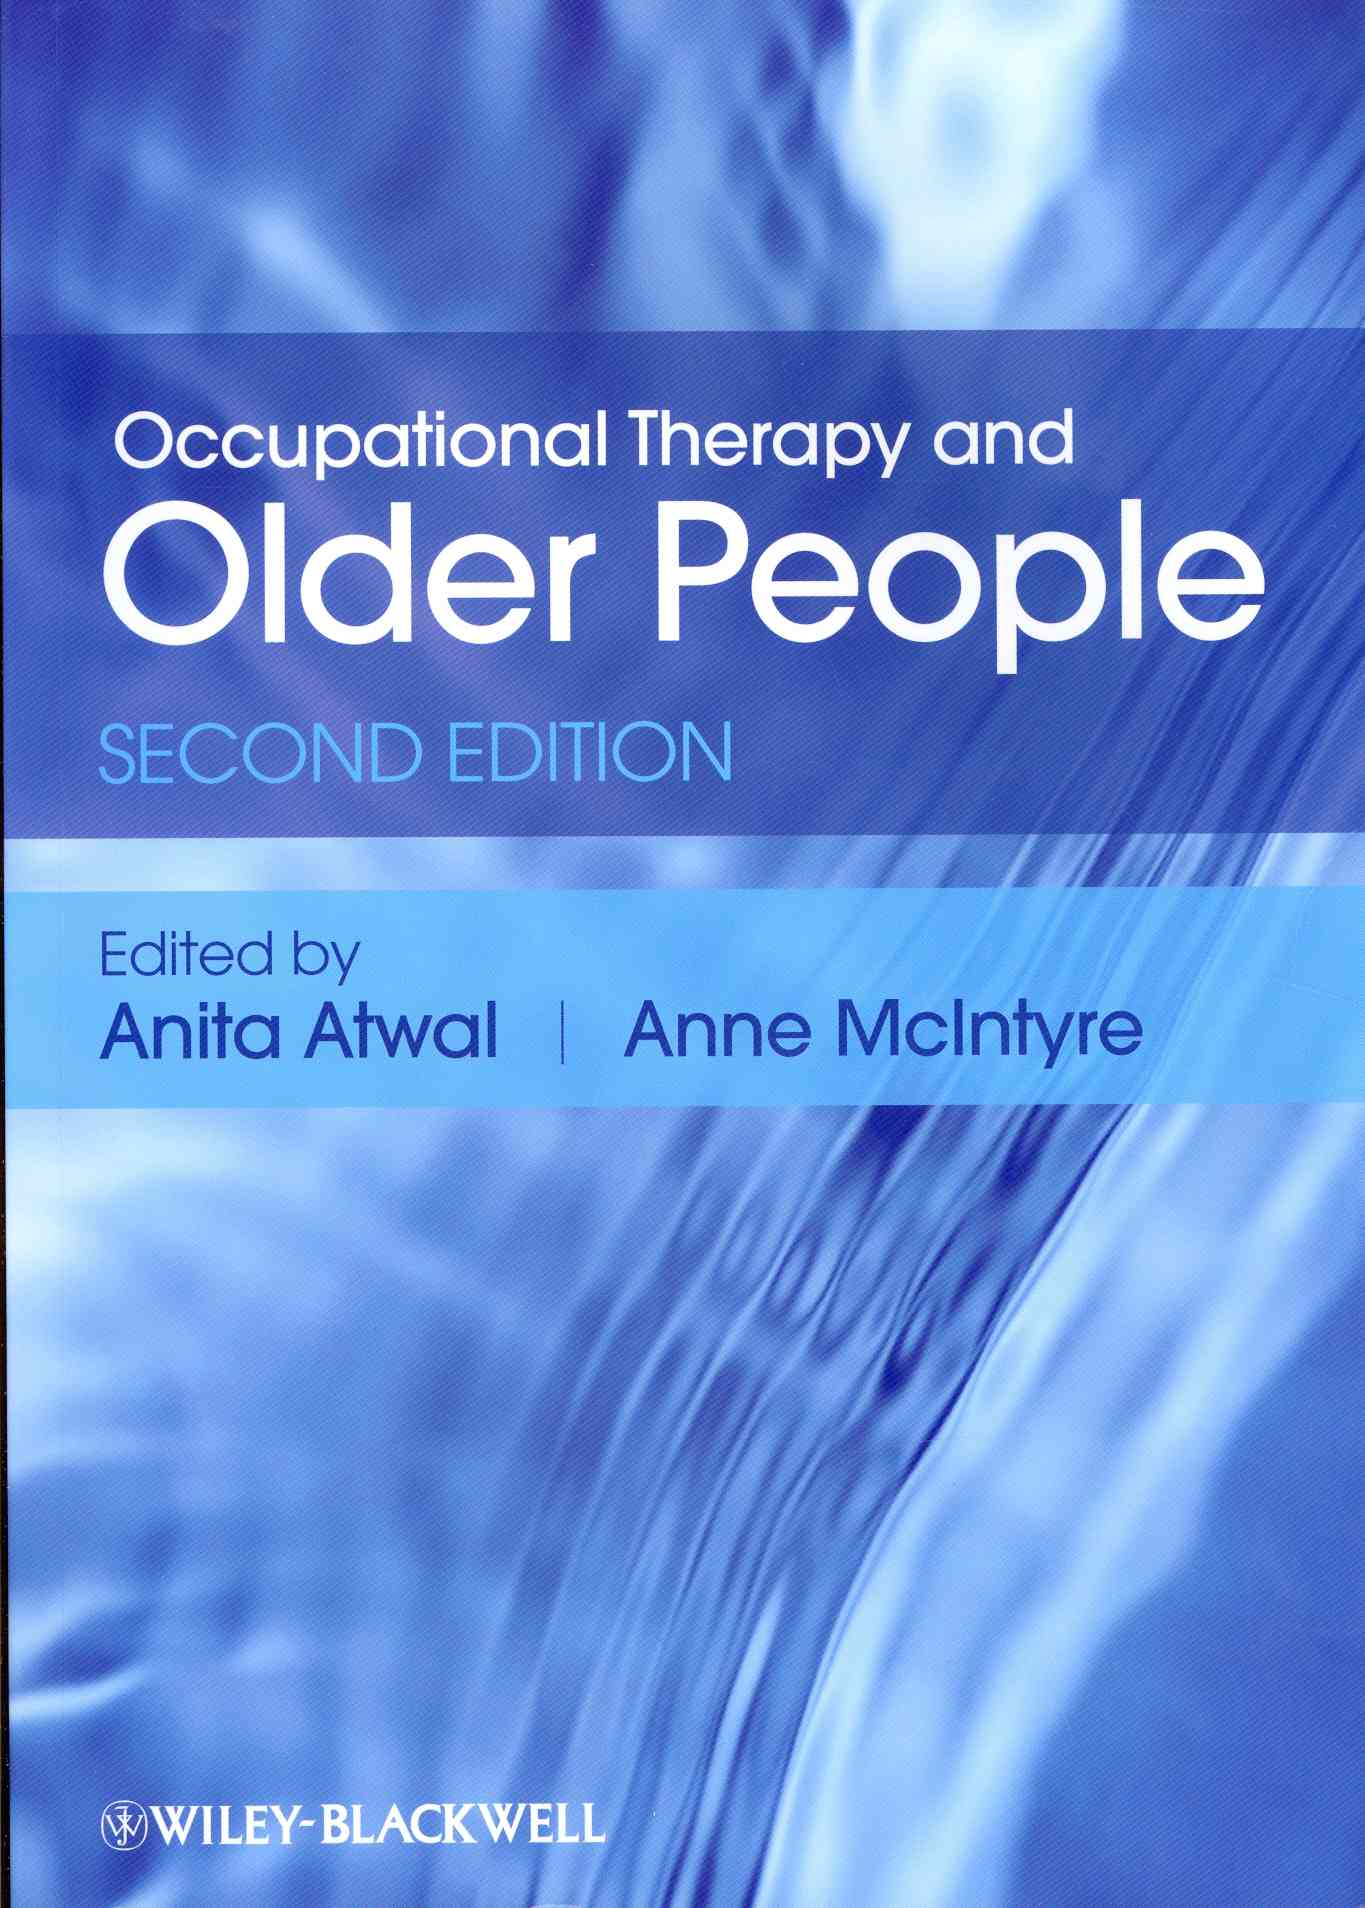 Occupational Therapy and Older People By Atwal, Anita/ McIntyre, Anne